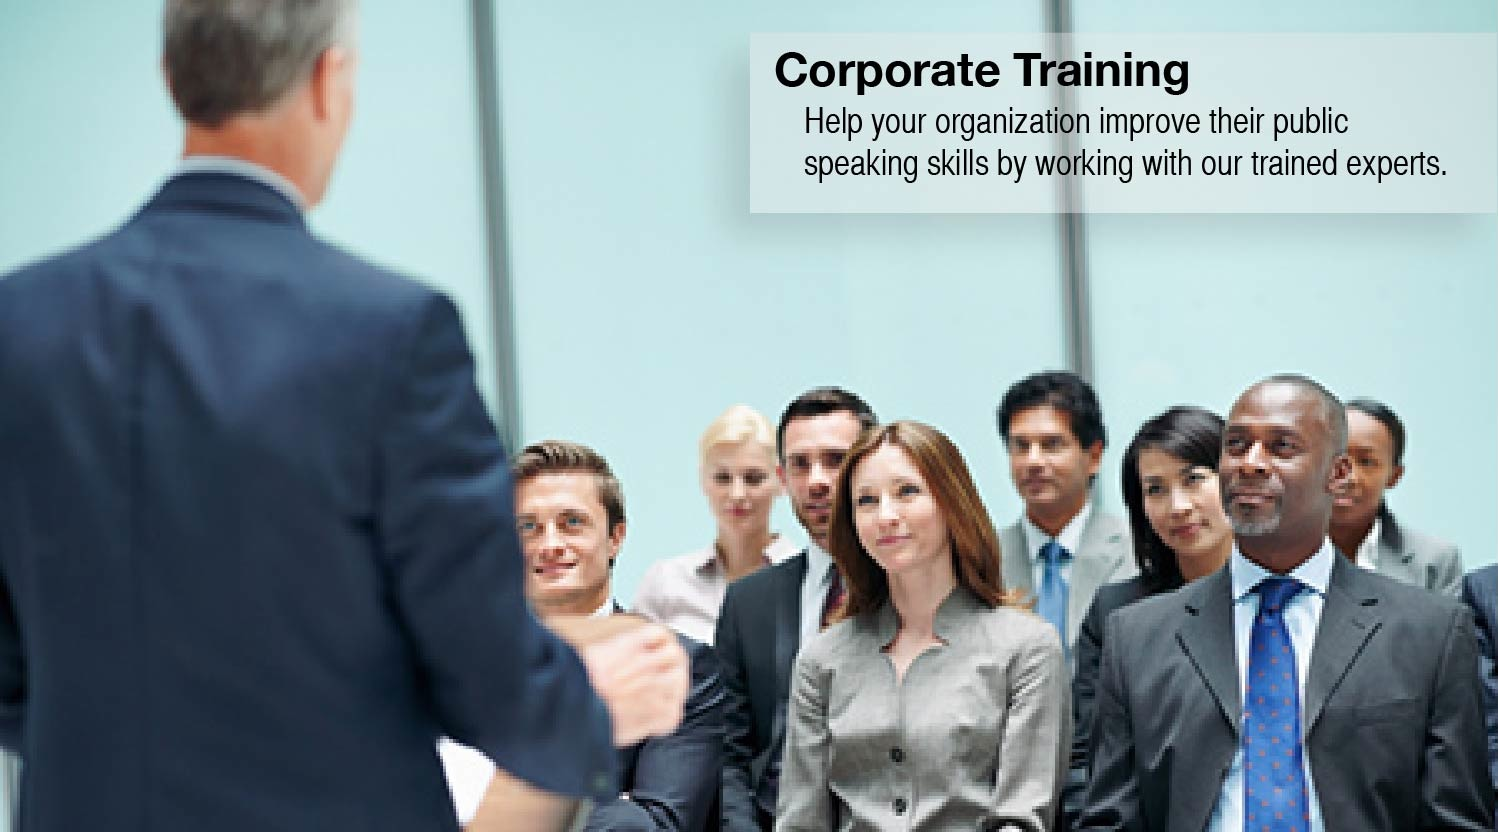 Corporate Public Speaking Training for your organization.